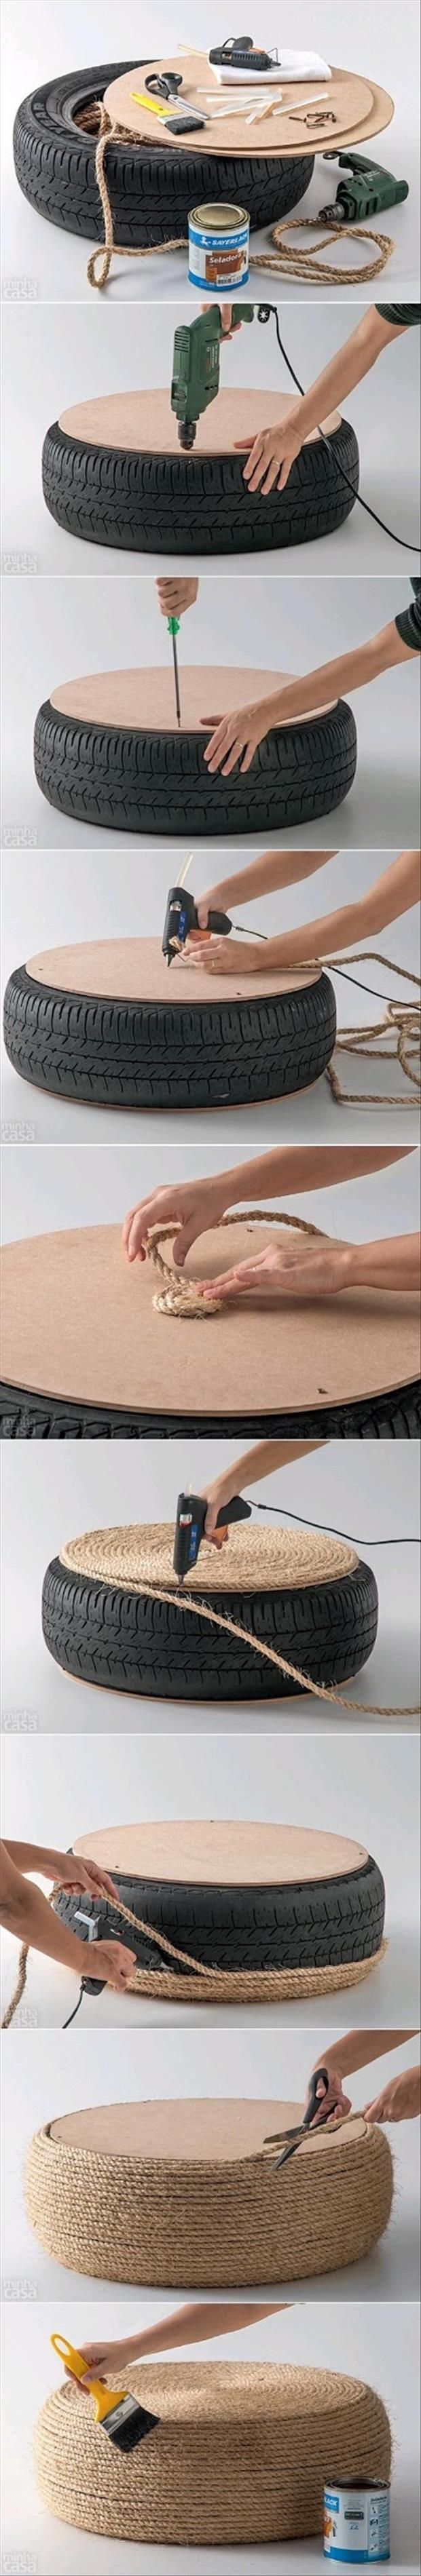 do it yourself projects using old tires, dumpaday (13)